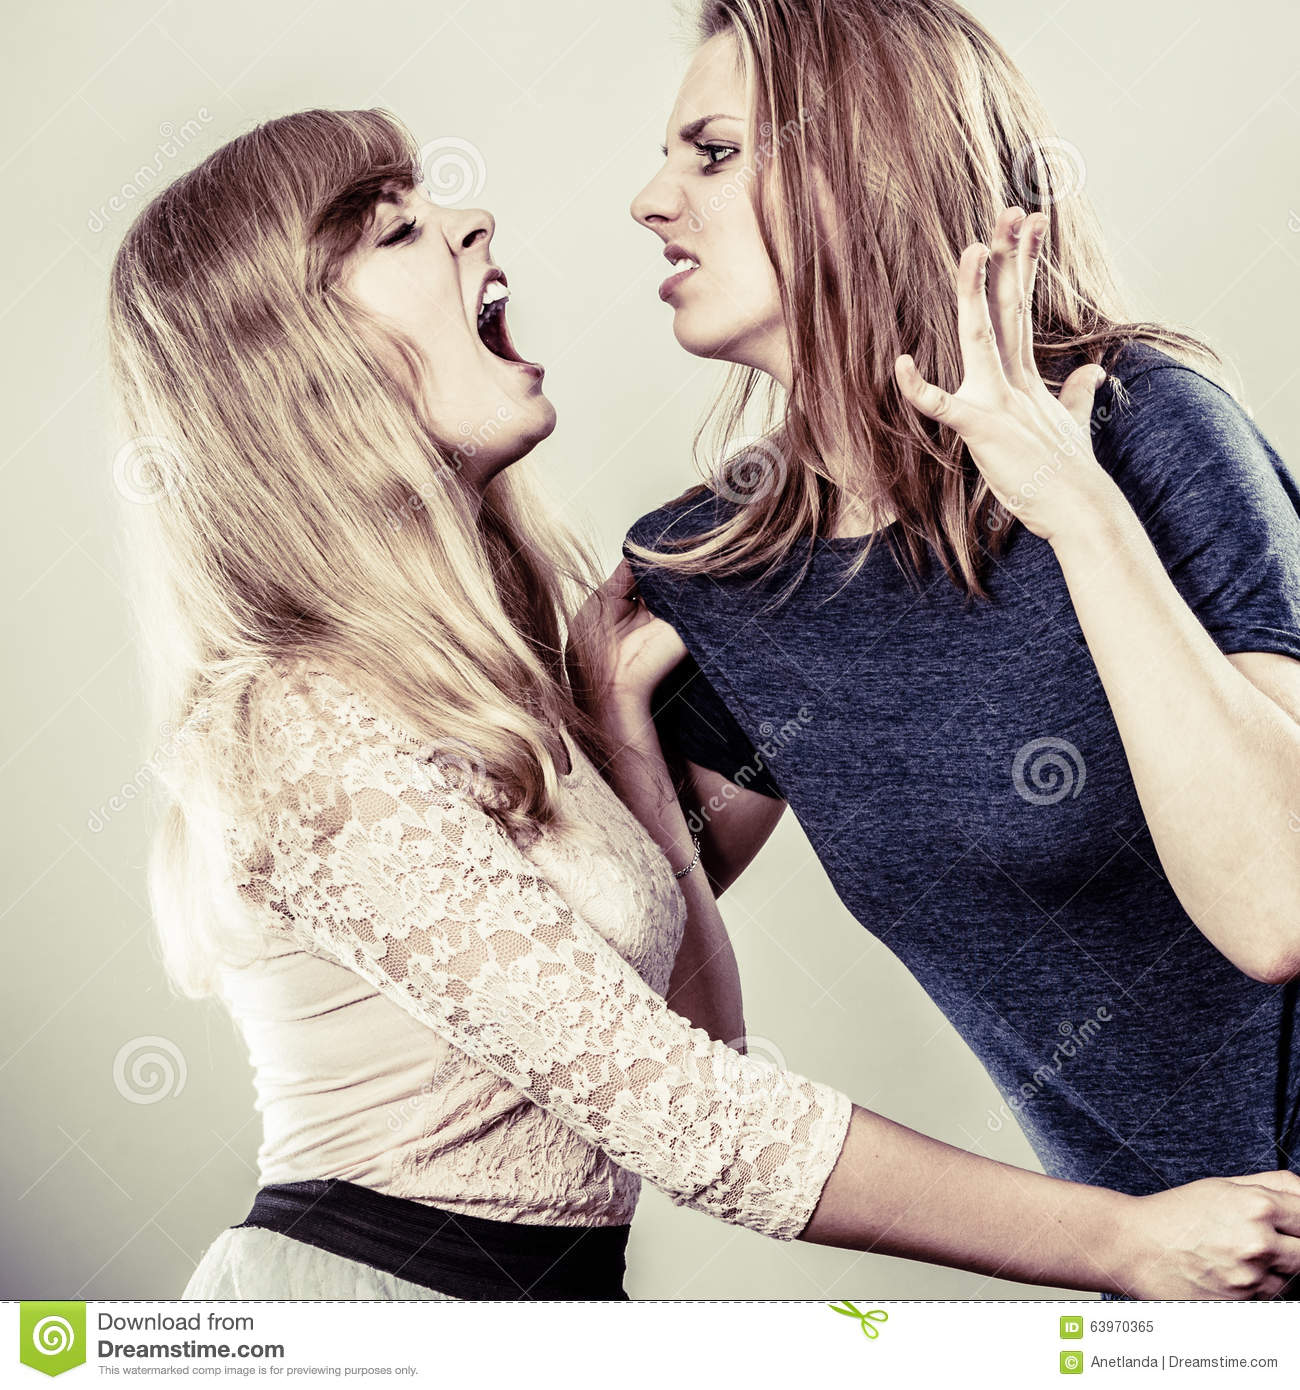 Aggressive Mad Women Fighting Each Other. Stock Photo